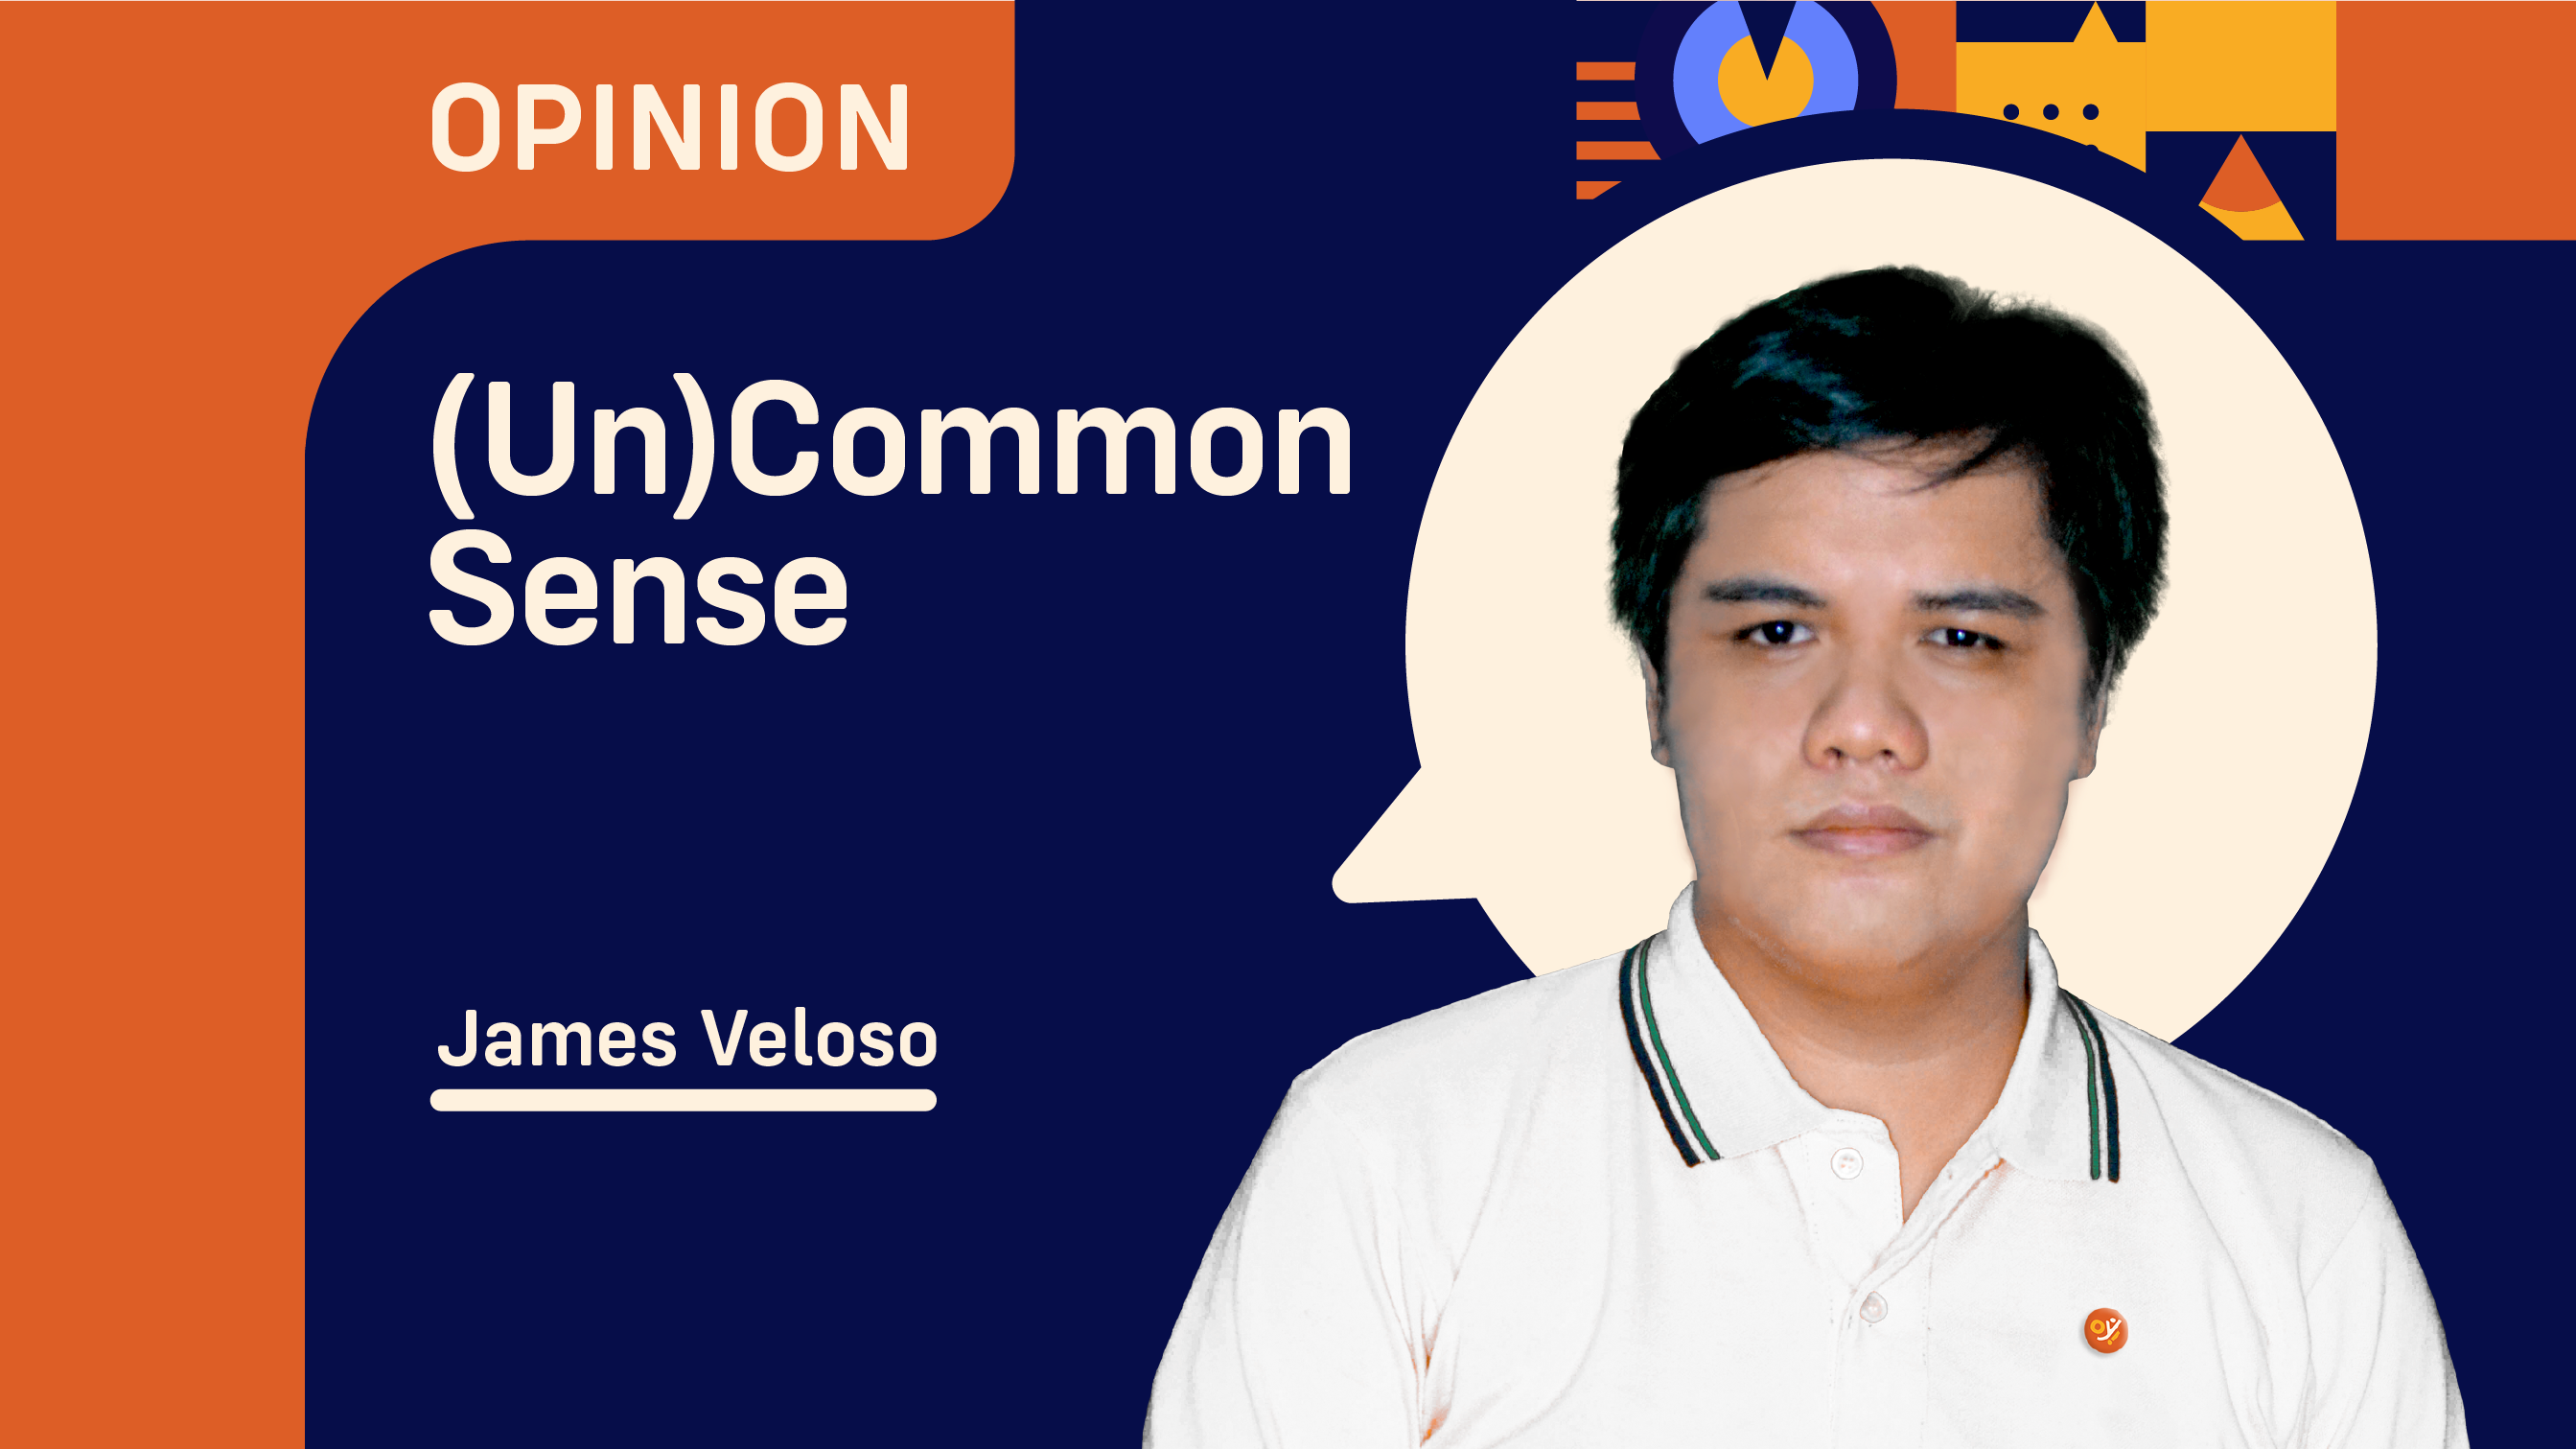 (Un)common Sense by James Veloso